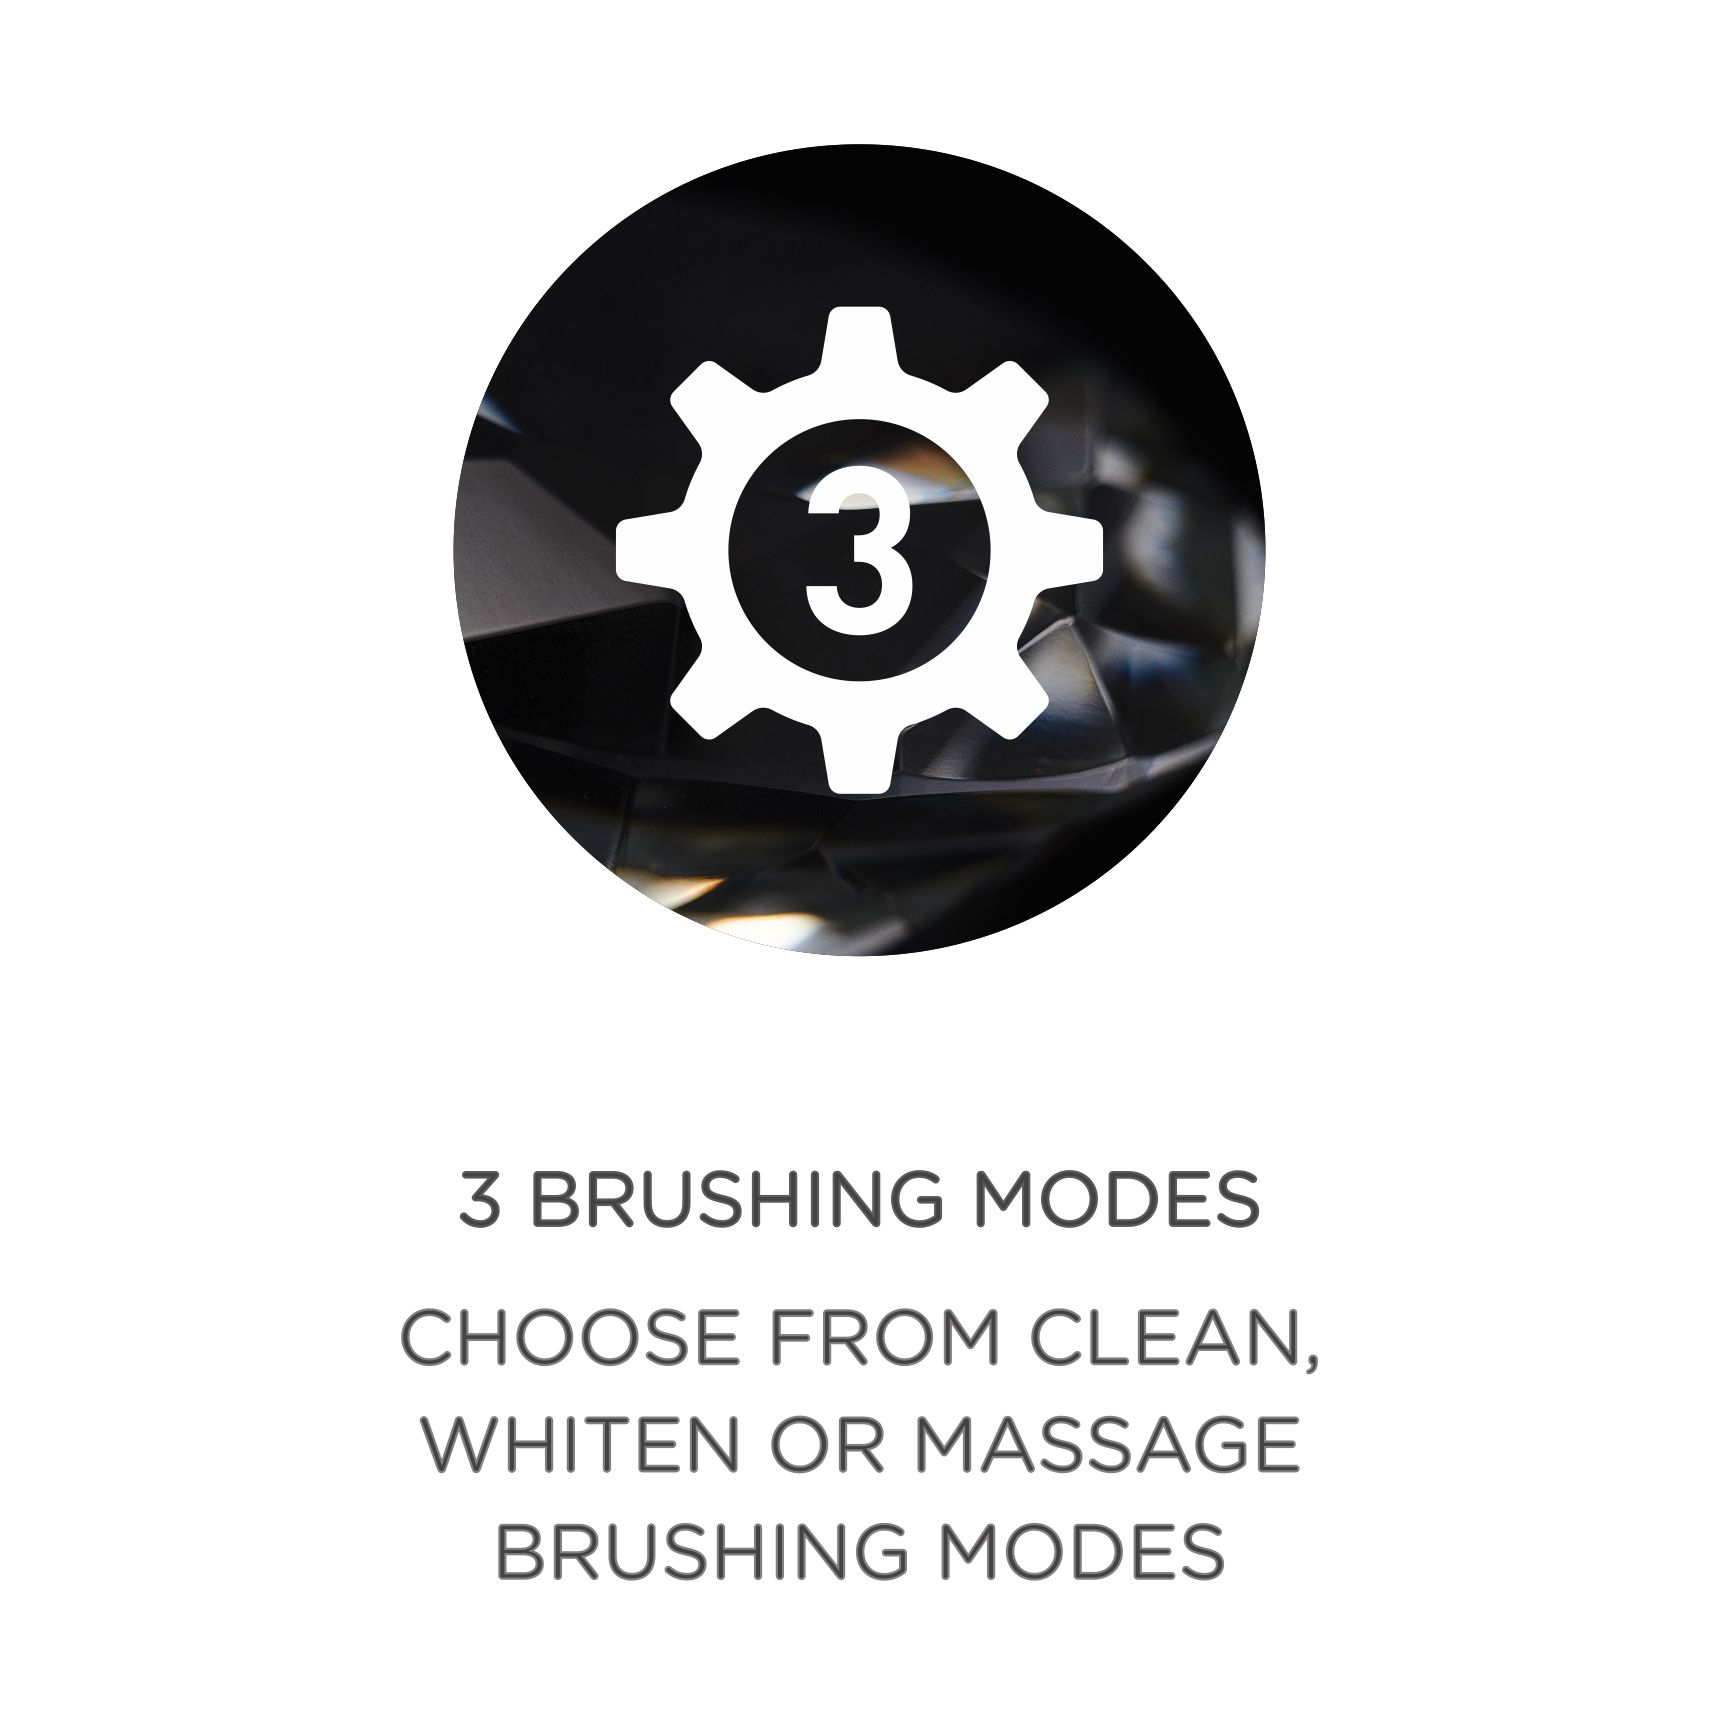 Toothbrush Cog Icon